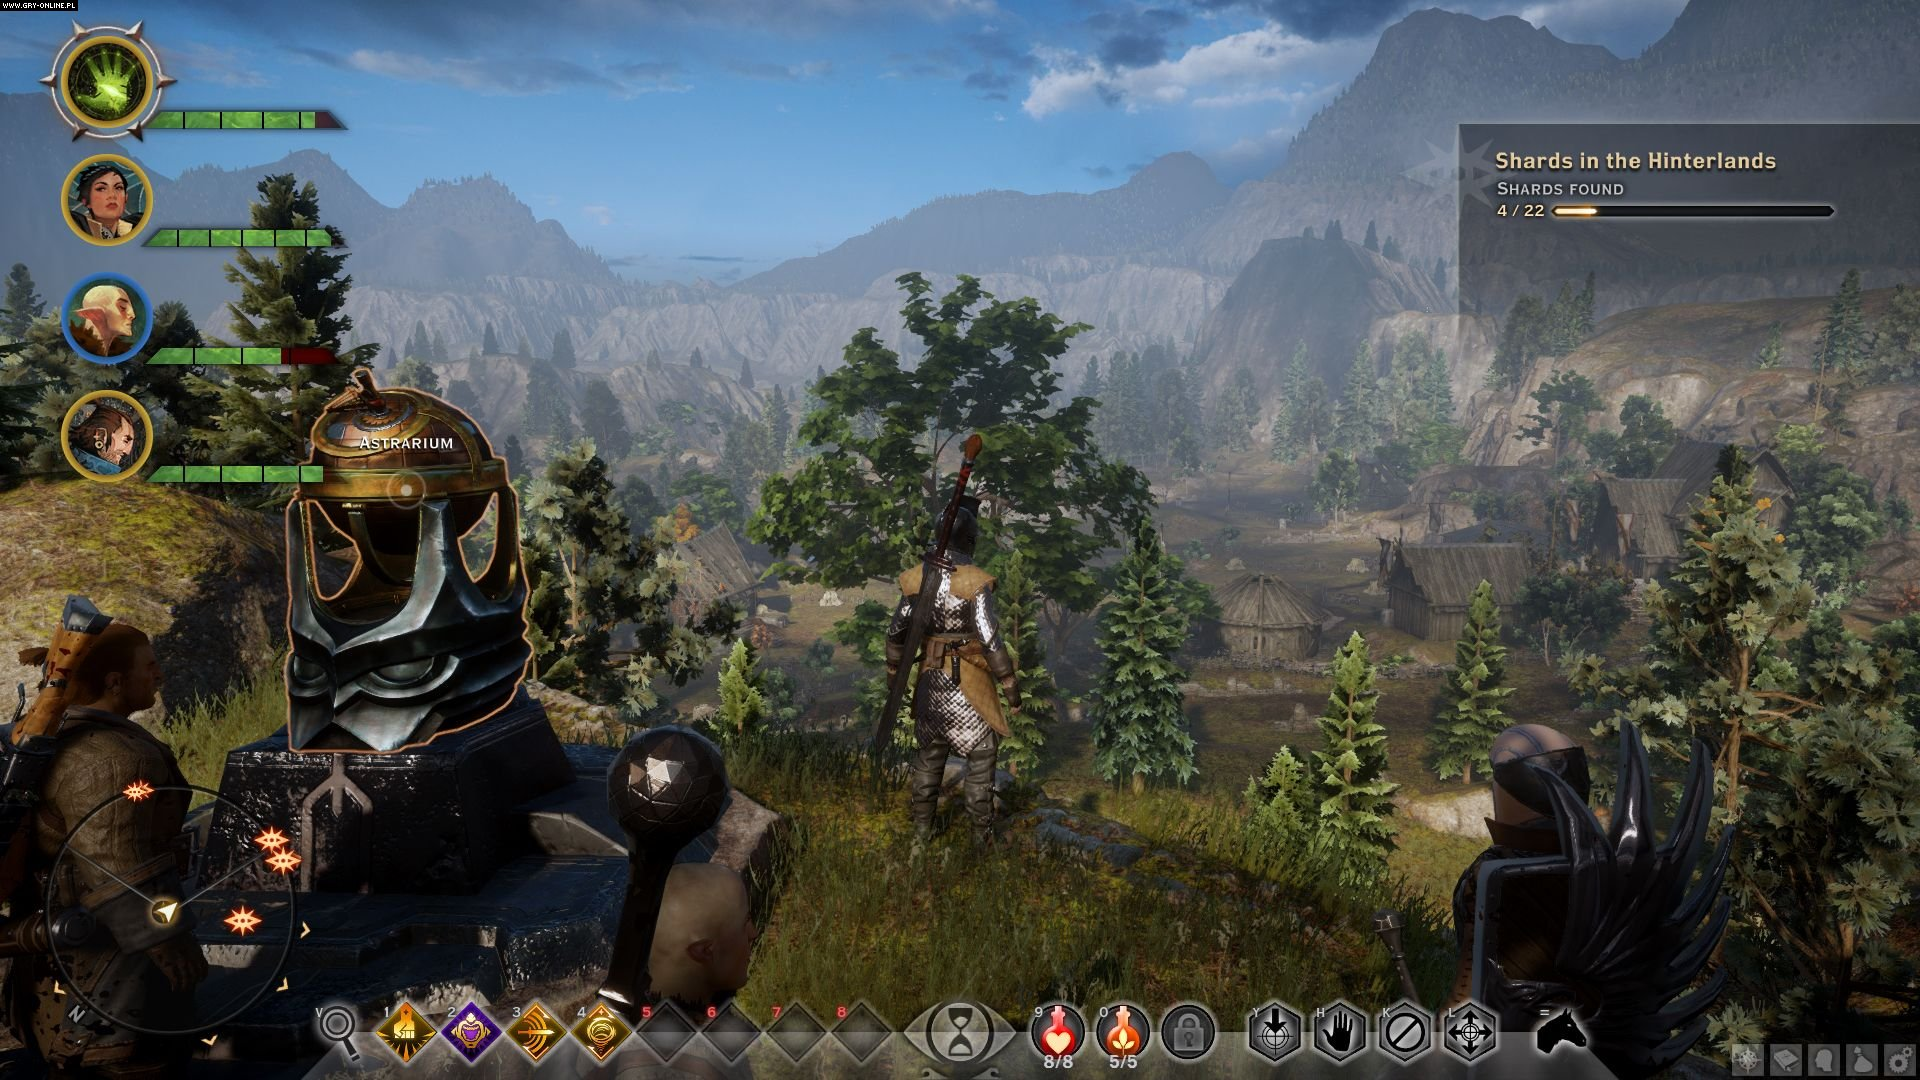 Dragon Age: Inquisition PC, X360, PS3 Games Image 4/225, BioWare Corporation, Electronic Arts Inc.